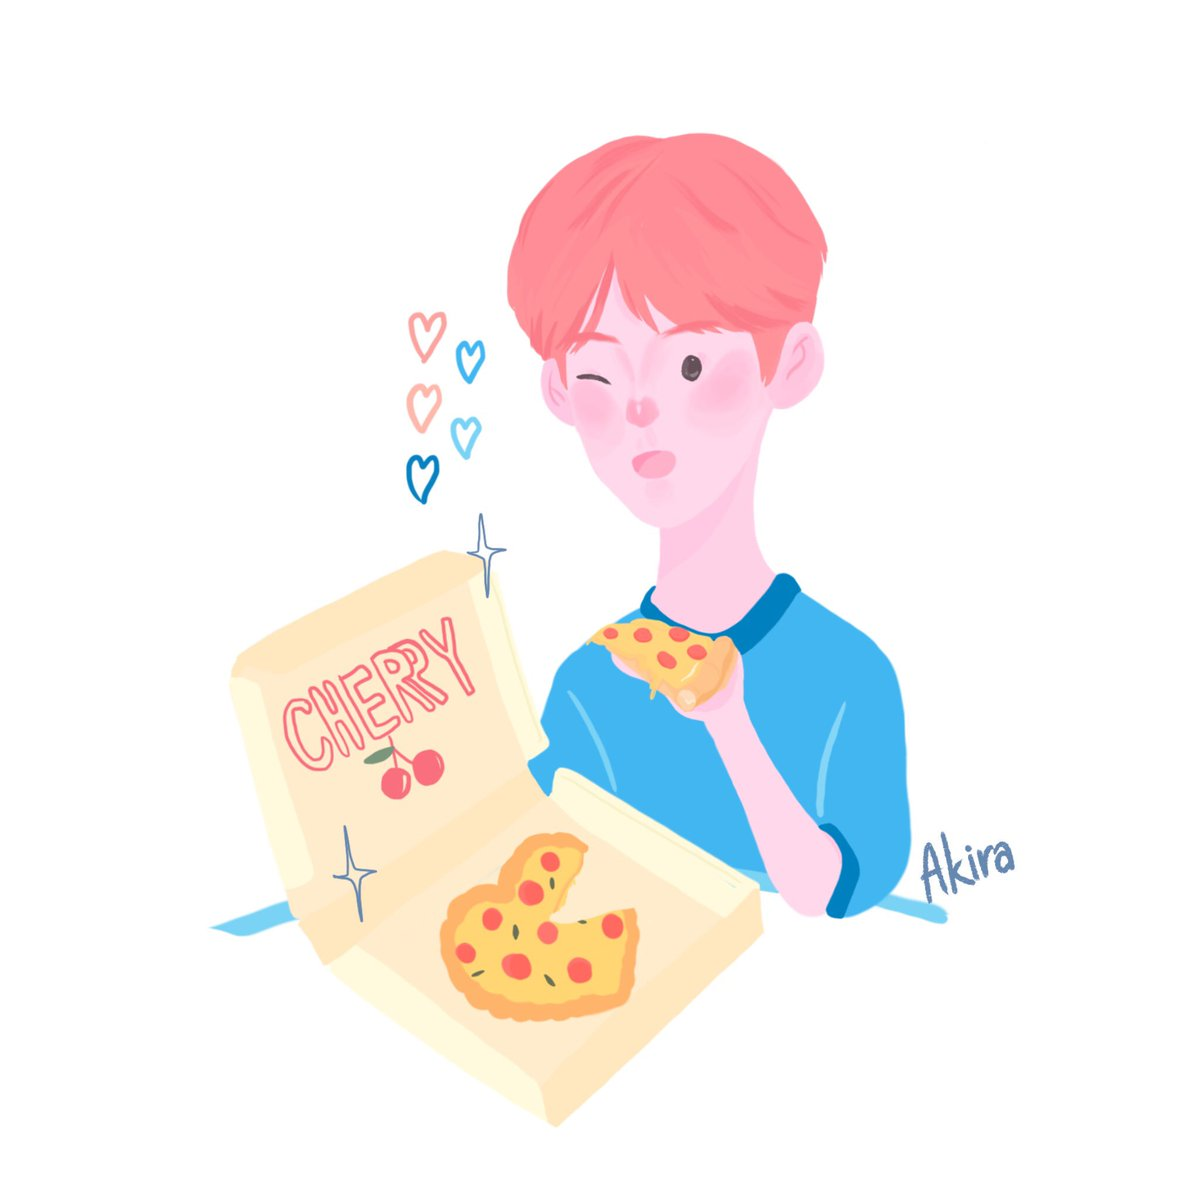 Love you as much as pizza   #이은상 #LEEEUNSANG #X1 #PRODUCE_X_101 <br>http://pic.twitter.com/97C3kksiYI